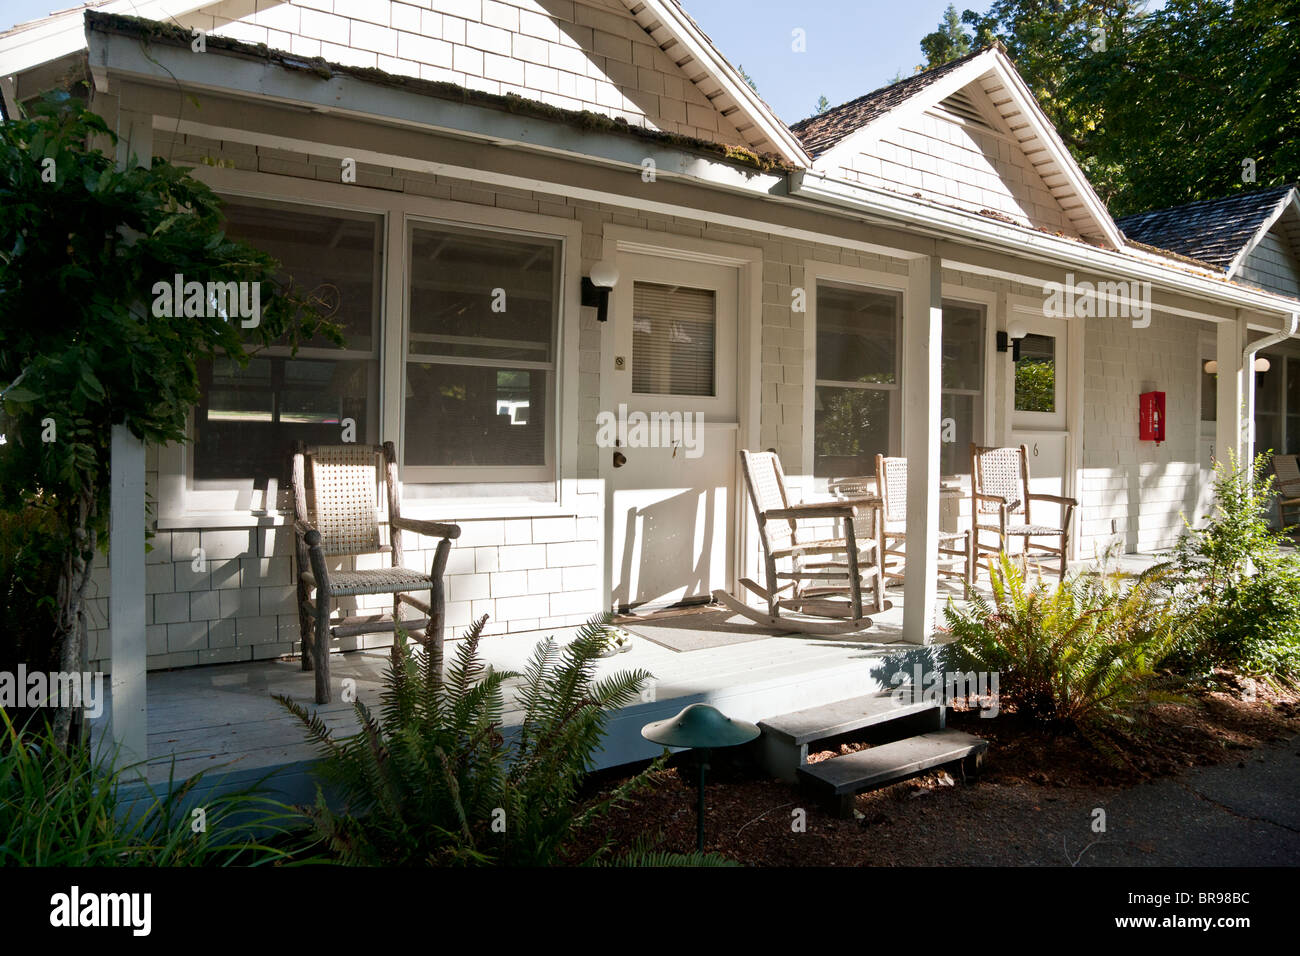 Stock photo simple white painted wood shingle cottage units with veranda at turn of the century lake crescent lodge on lake crescent wa